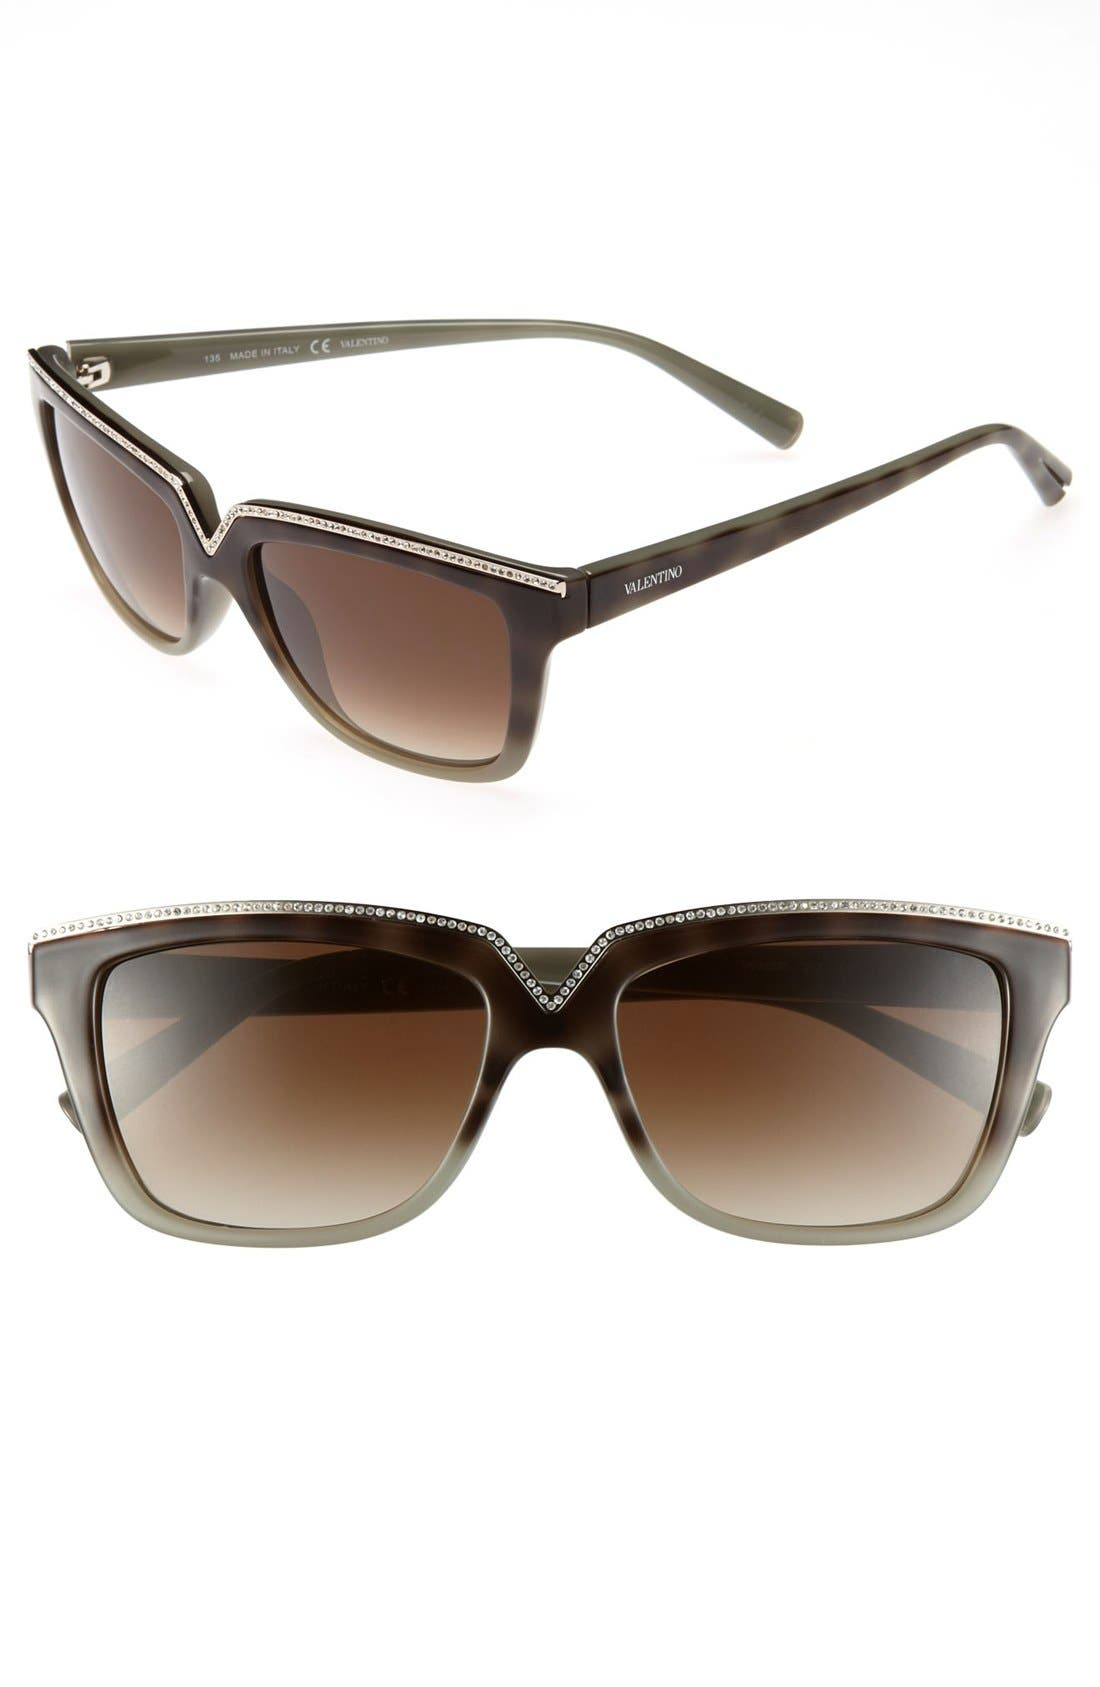 Main Image - Valentino 53mm Retro Sunglasses